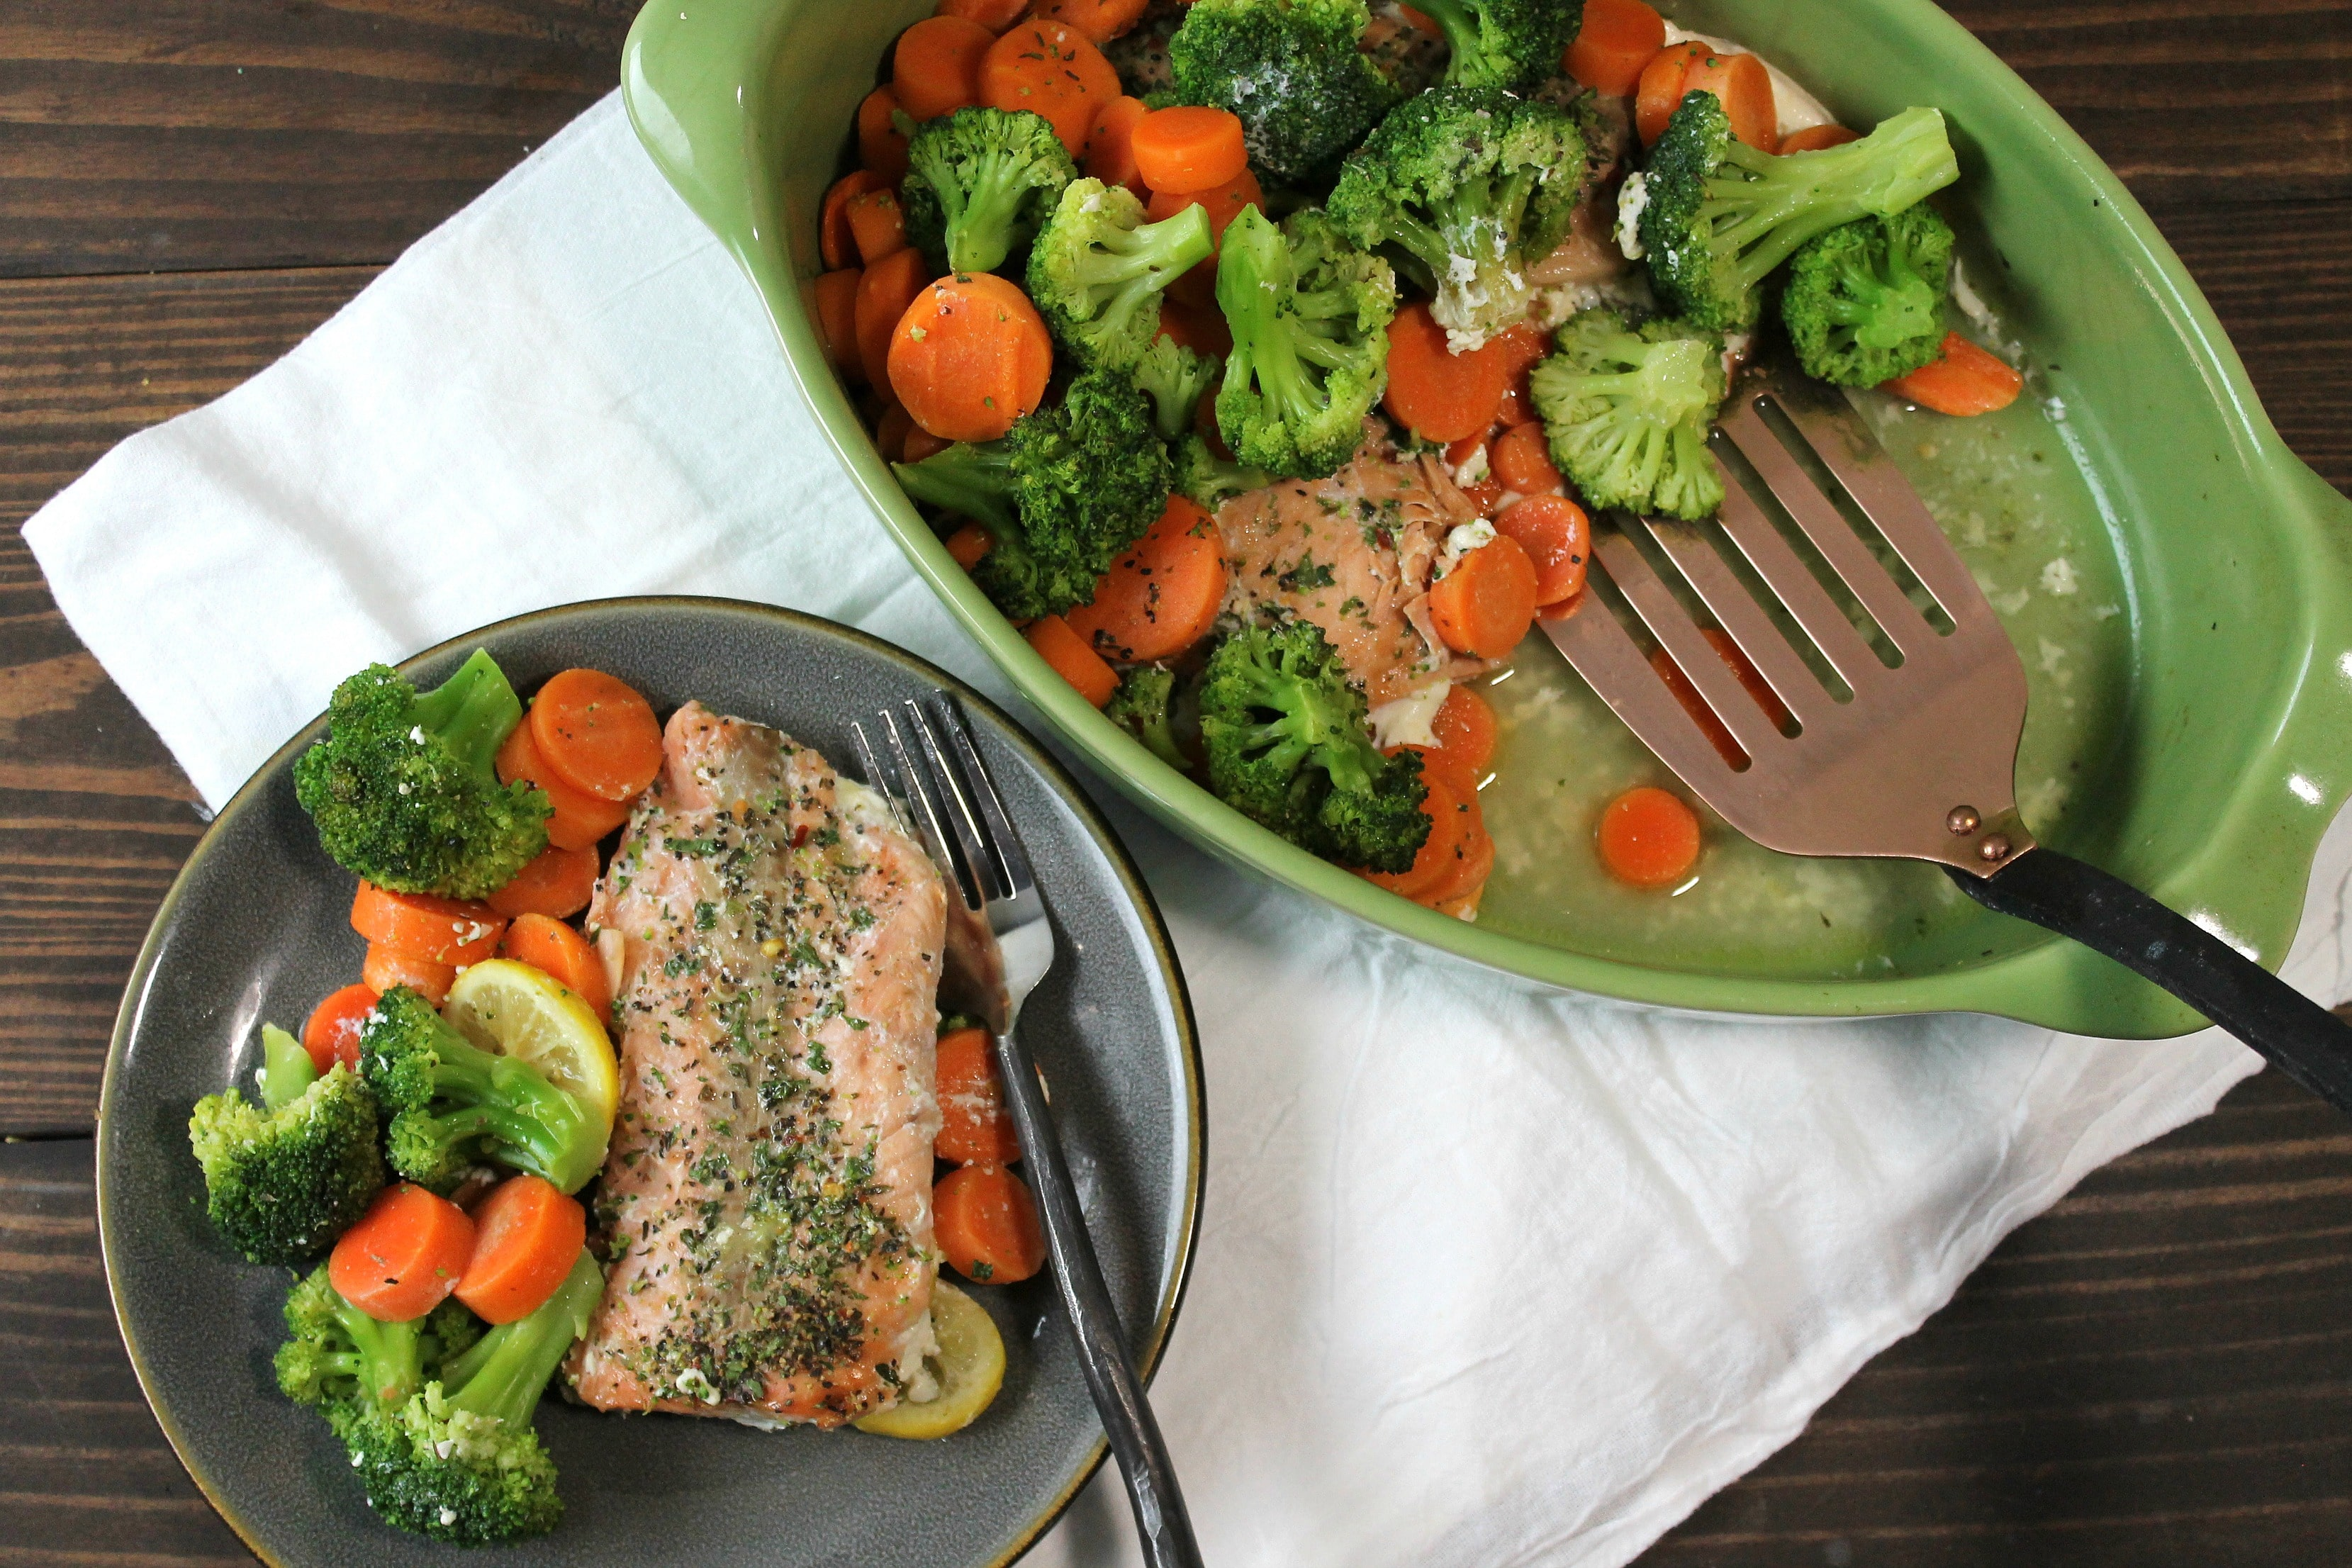 Light and healthy salmon dinner 5 dinners in 1 hour sisterspd